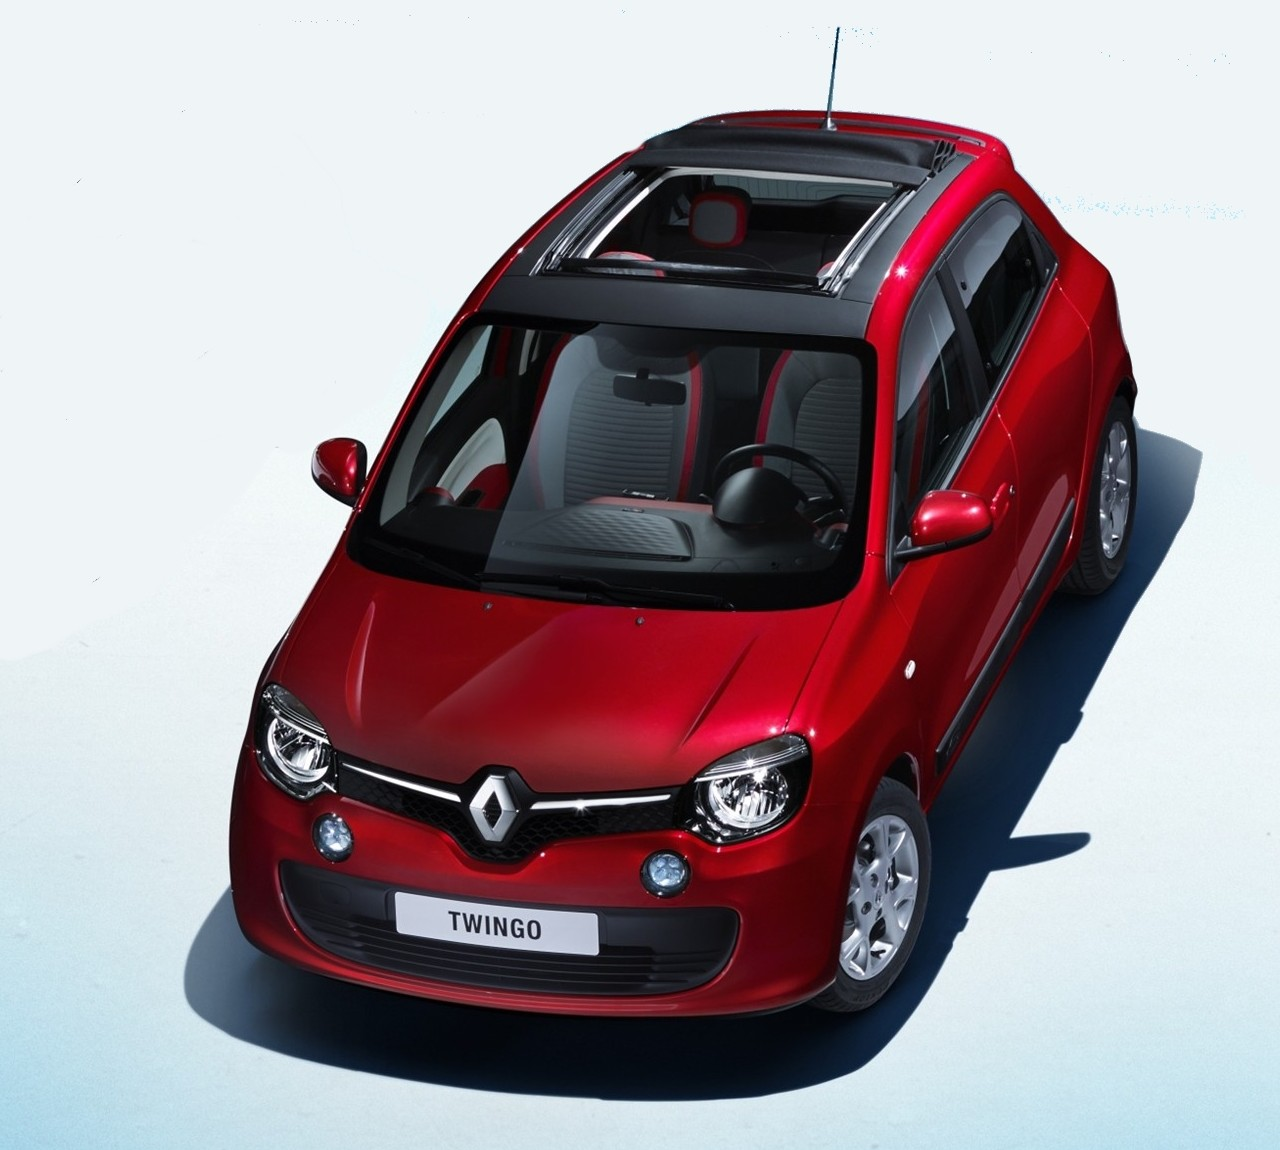 2014 renault twingo iii x07 page 18. Black Bedroom Furniture Sets. Home Design Ideas